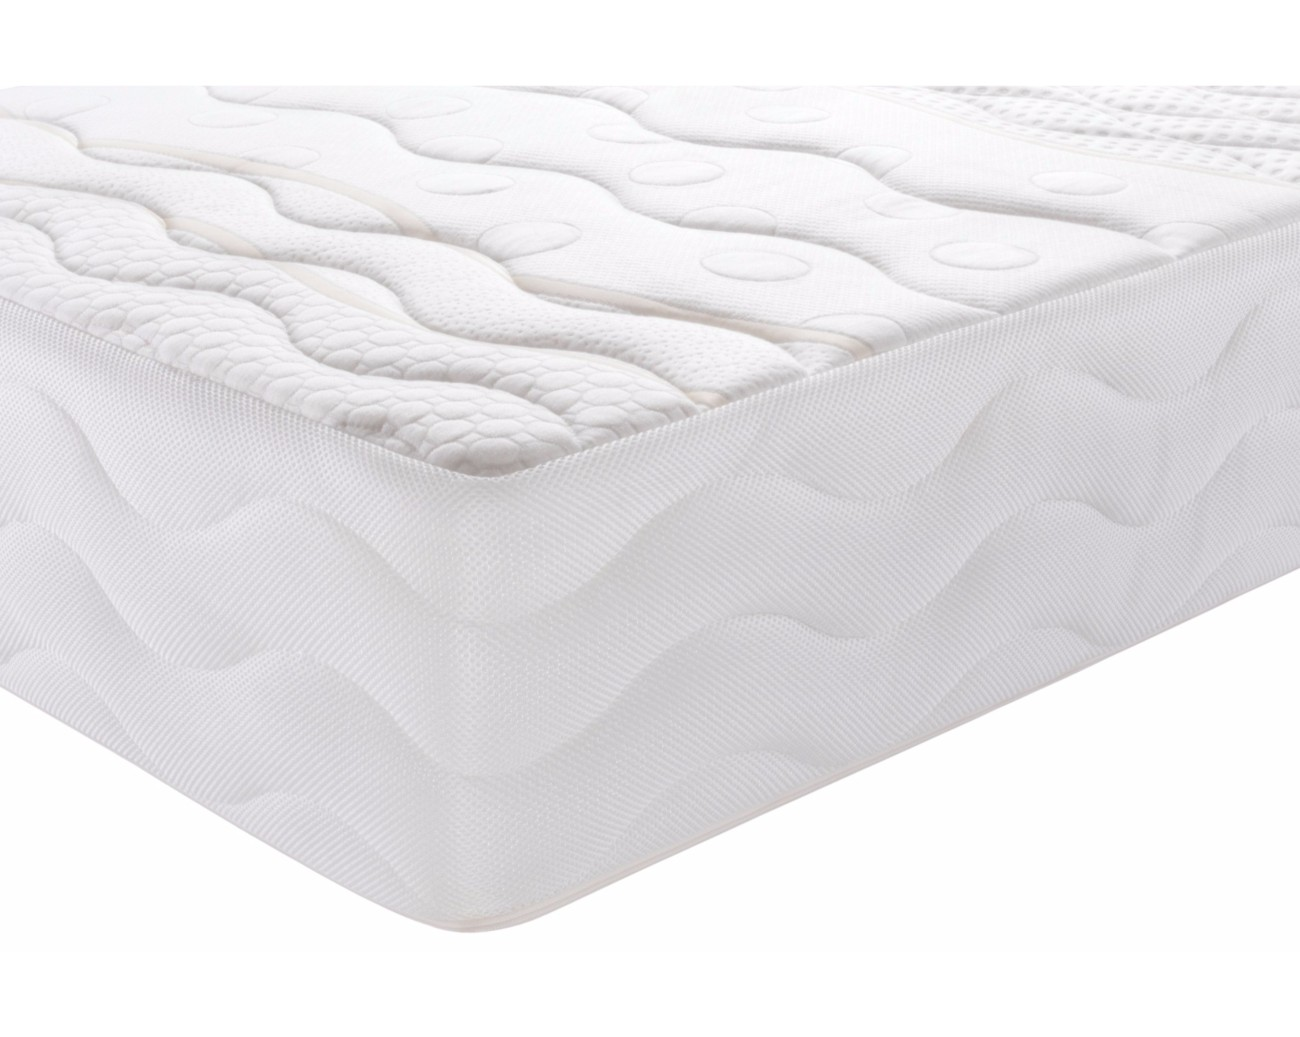 thumb_relyon_pocket_assure-1250_mattress_corner_cutout_relyon_2014